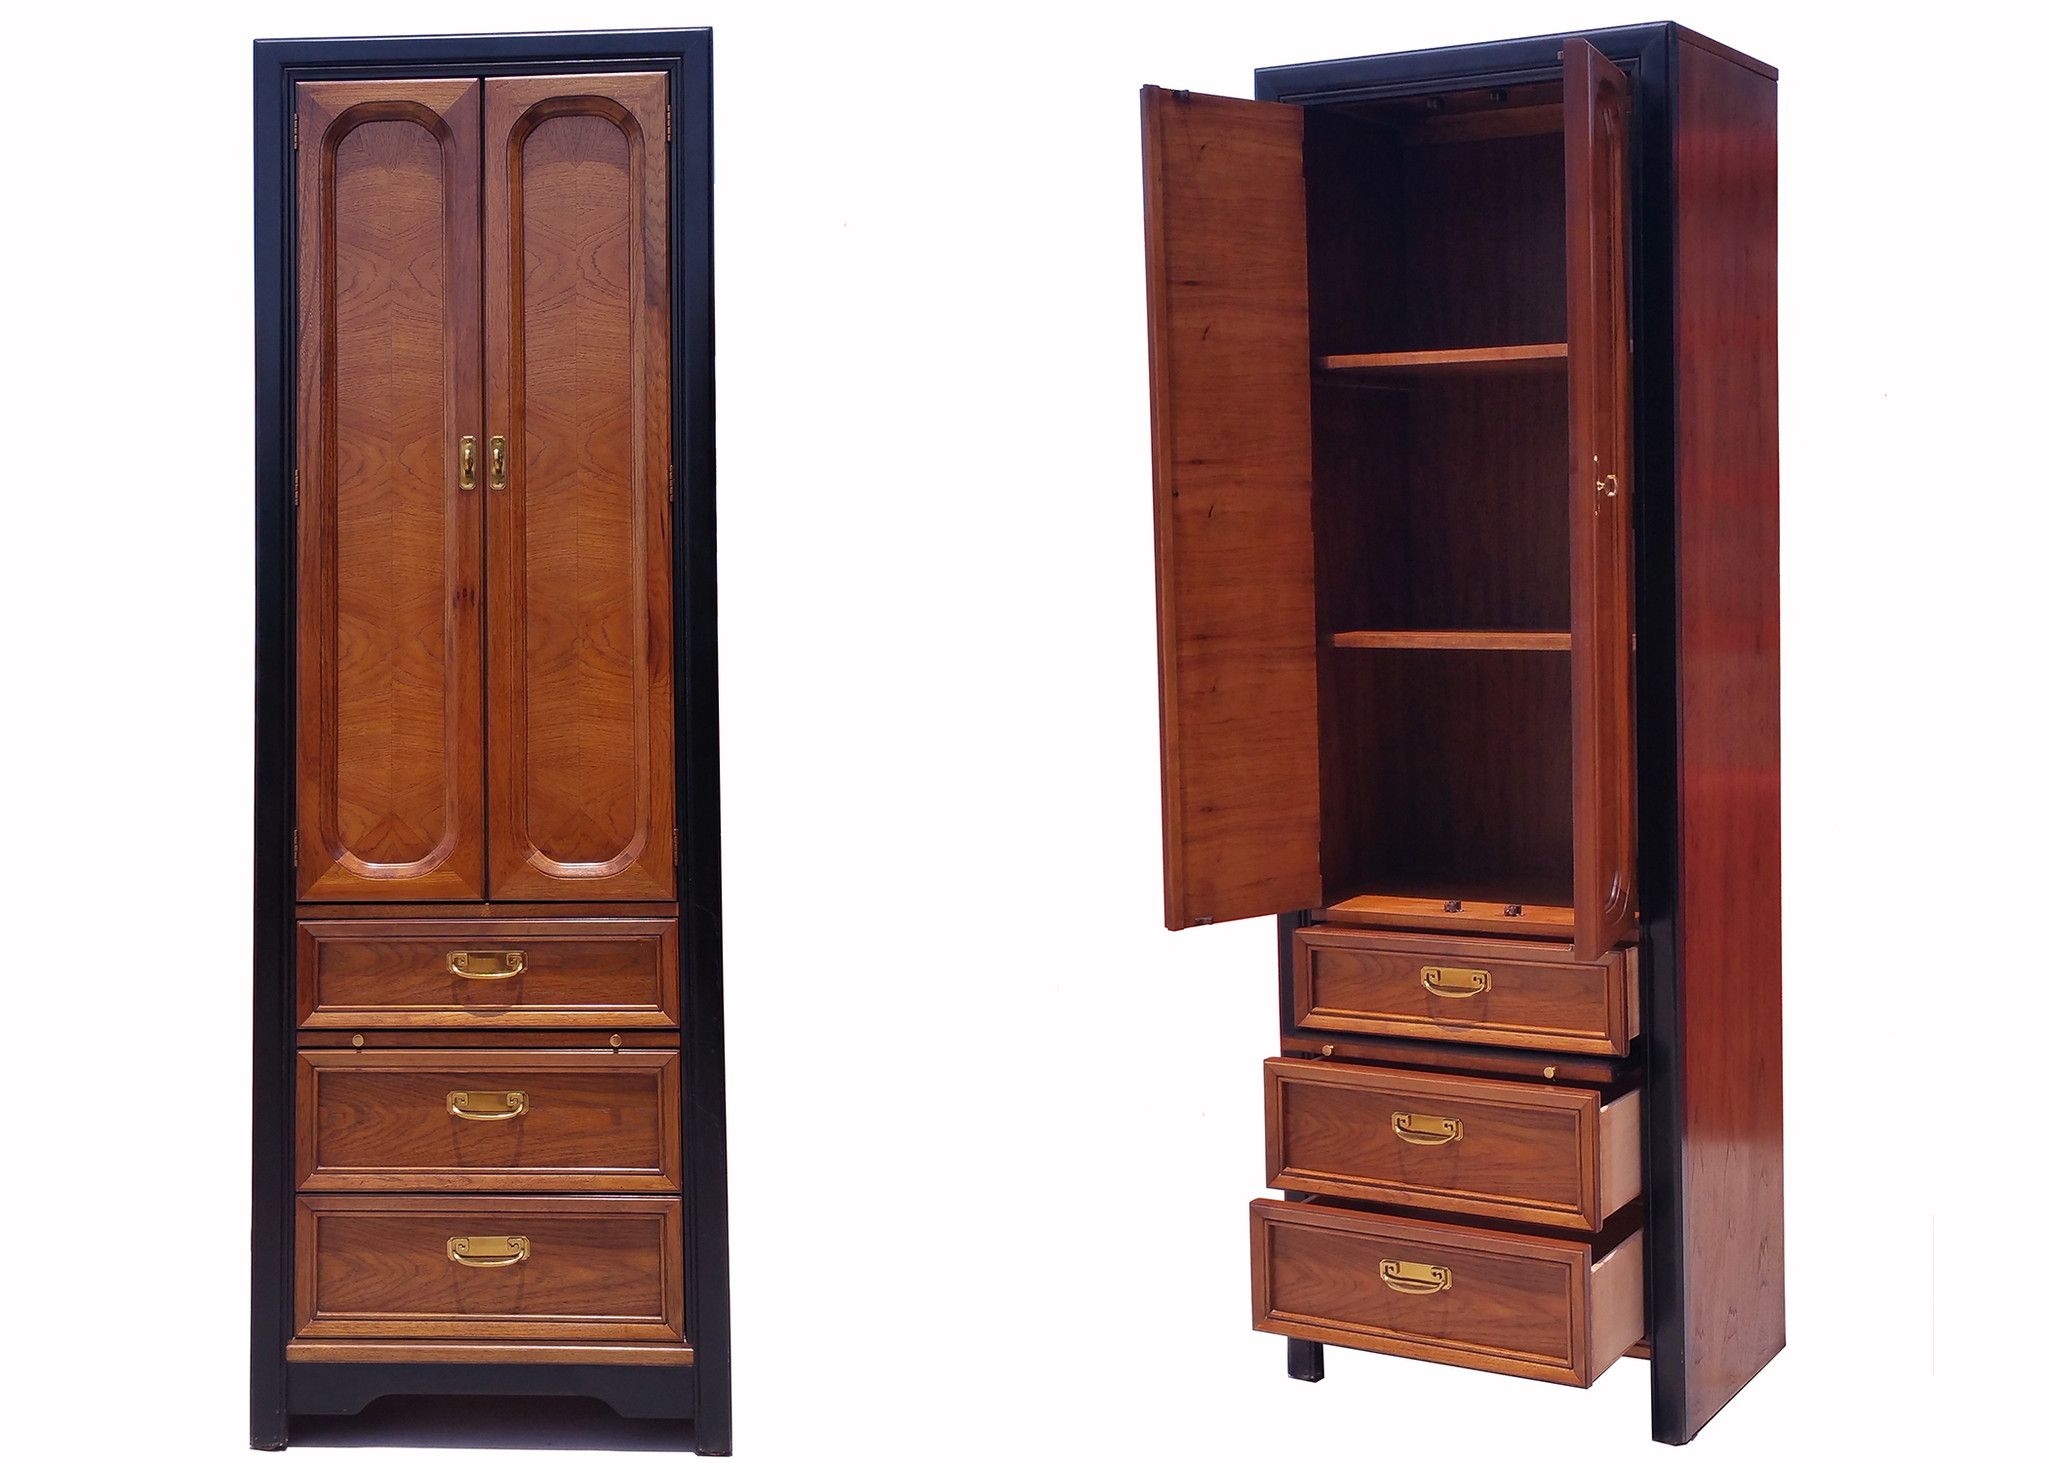 Charmant (2) THOMASVILLE OAK Tall Narrow Armoire / NightStand W/ Pull Out Tray From